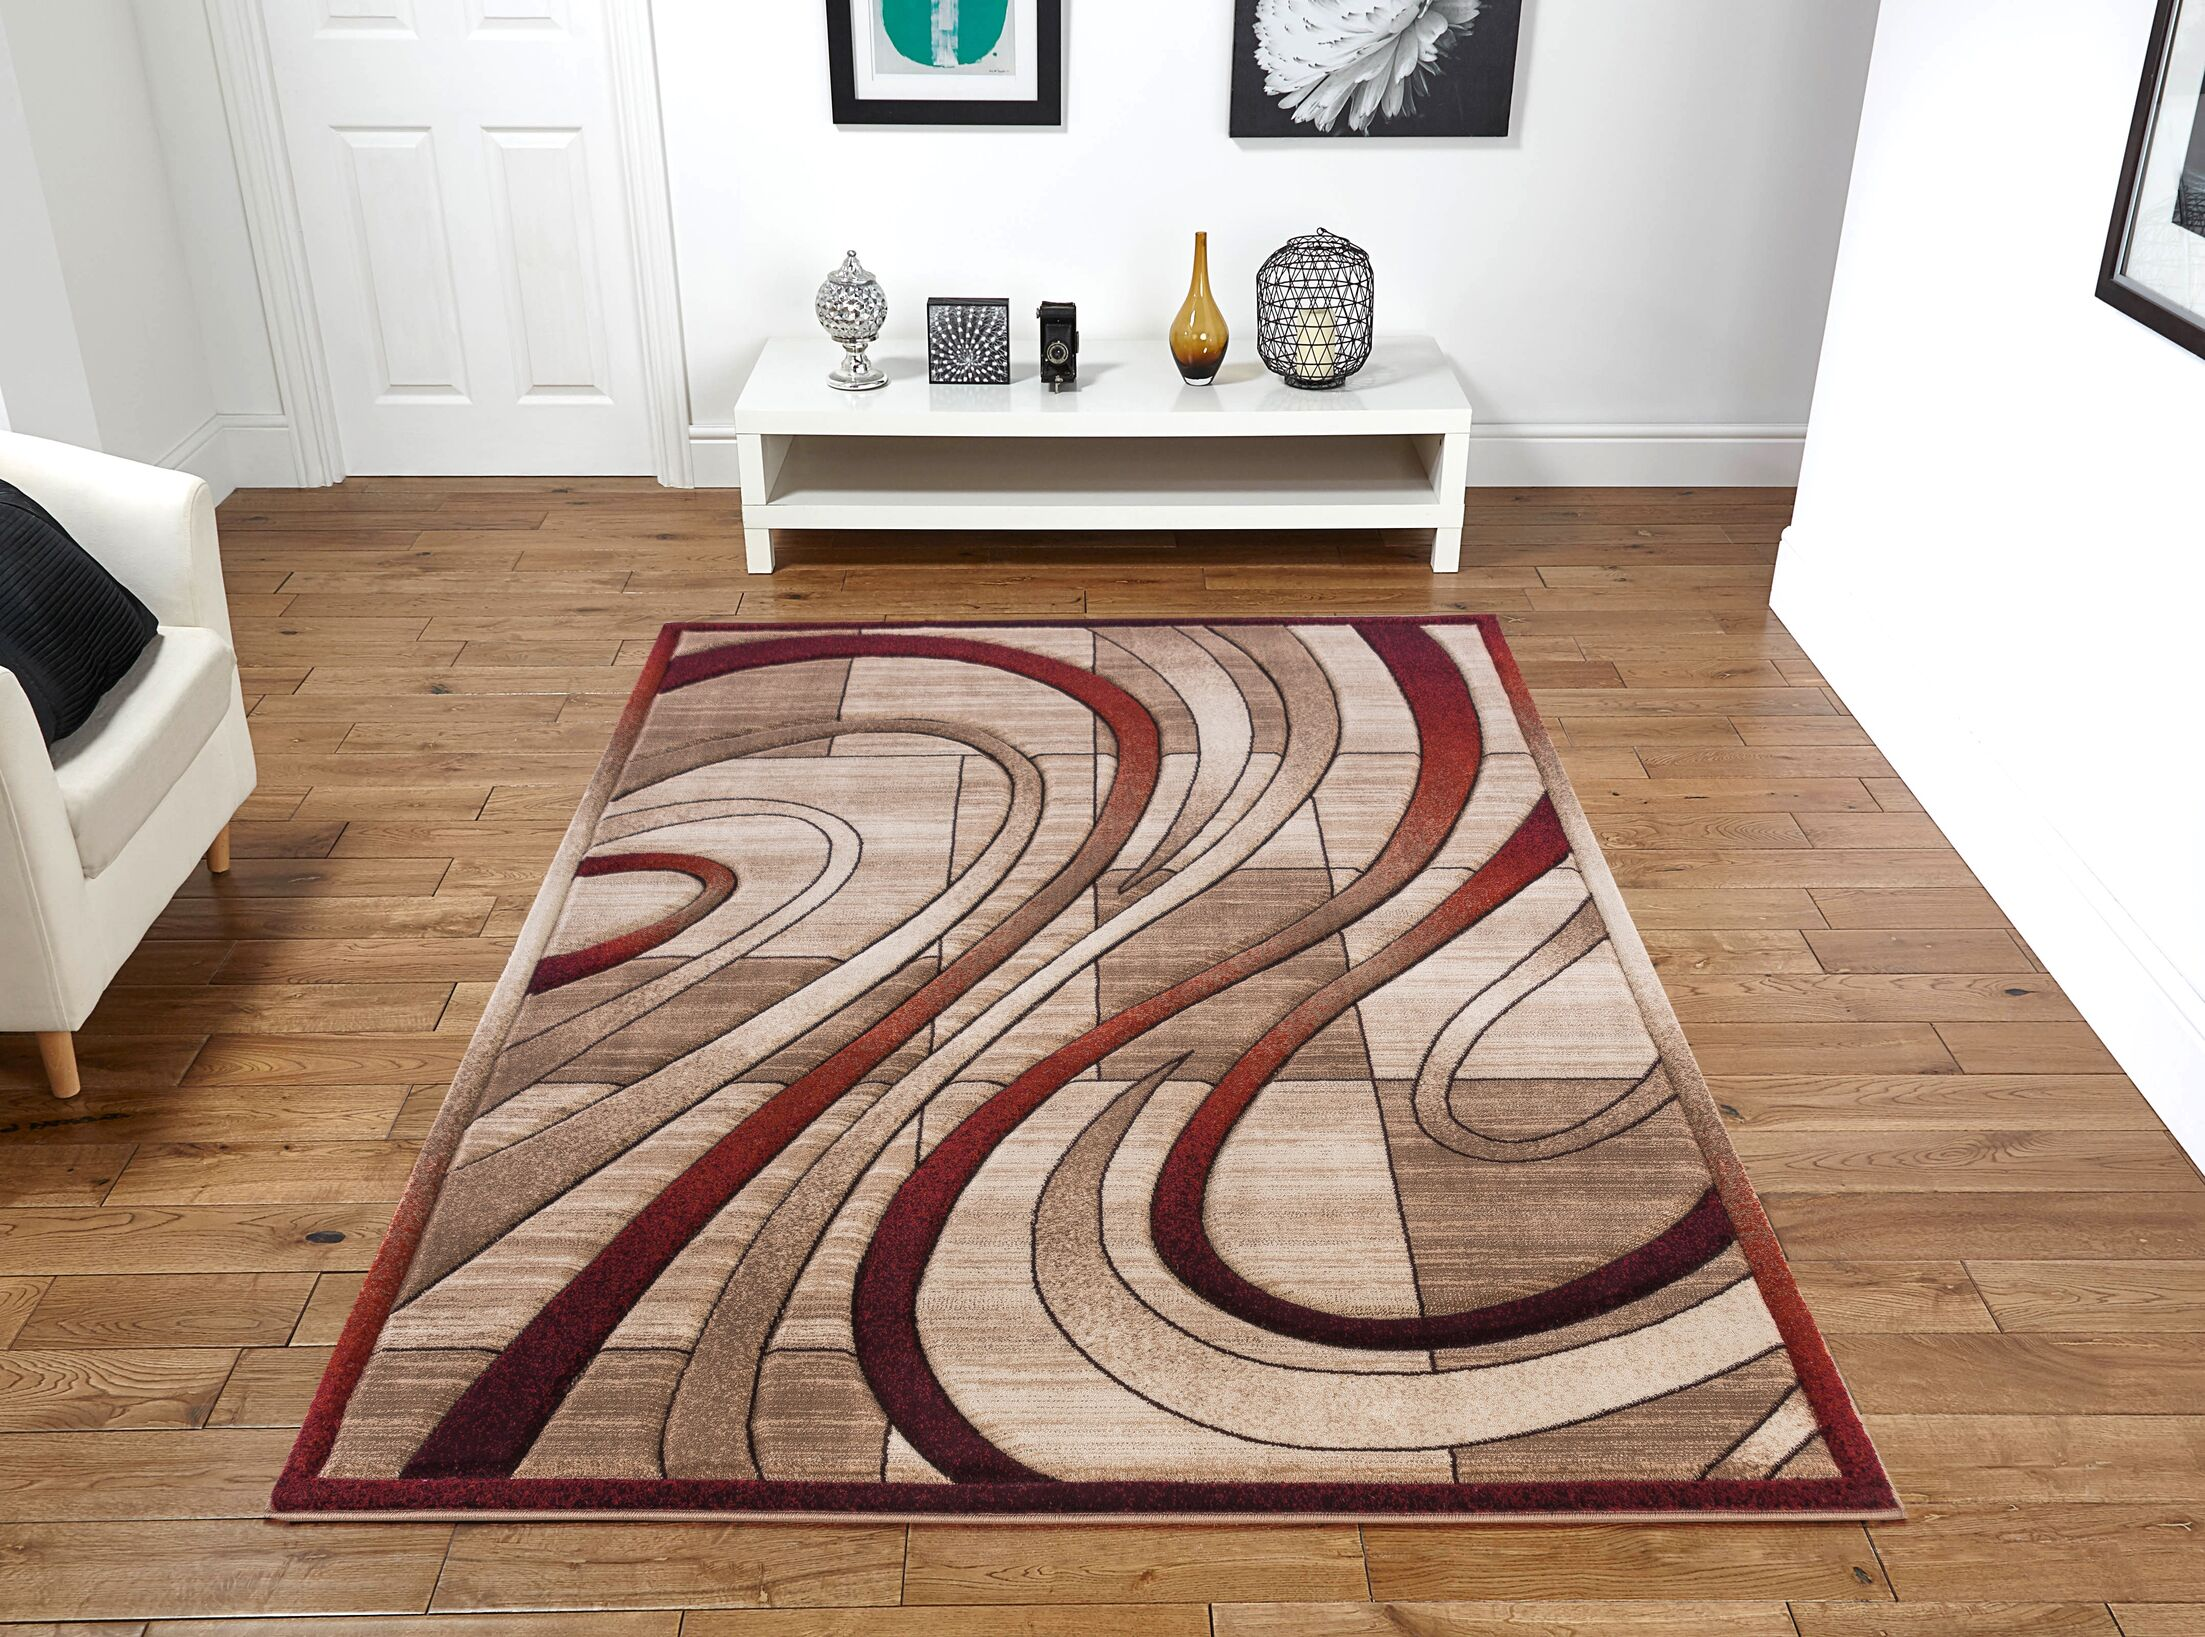 Yingling Beige/Red Area Rug Rug Size: Rectangle 5' x 8'